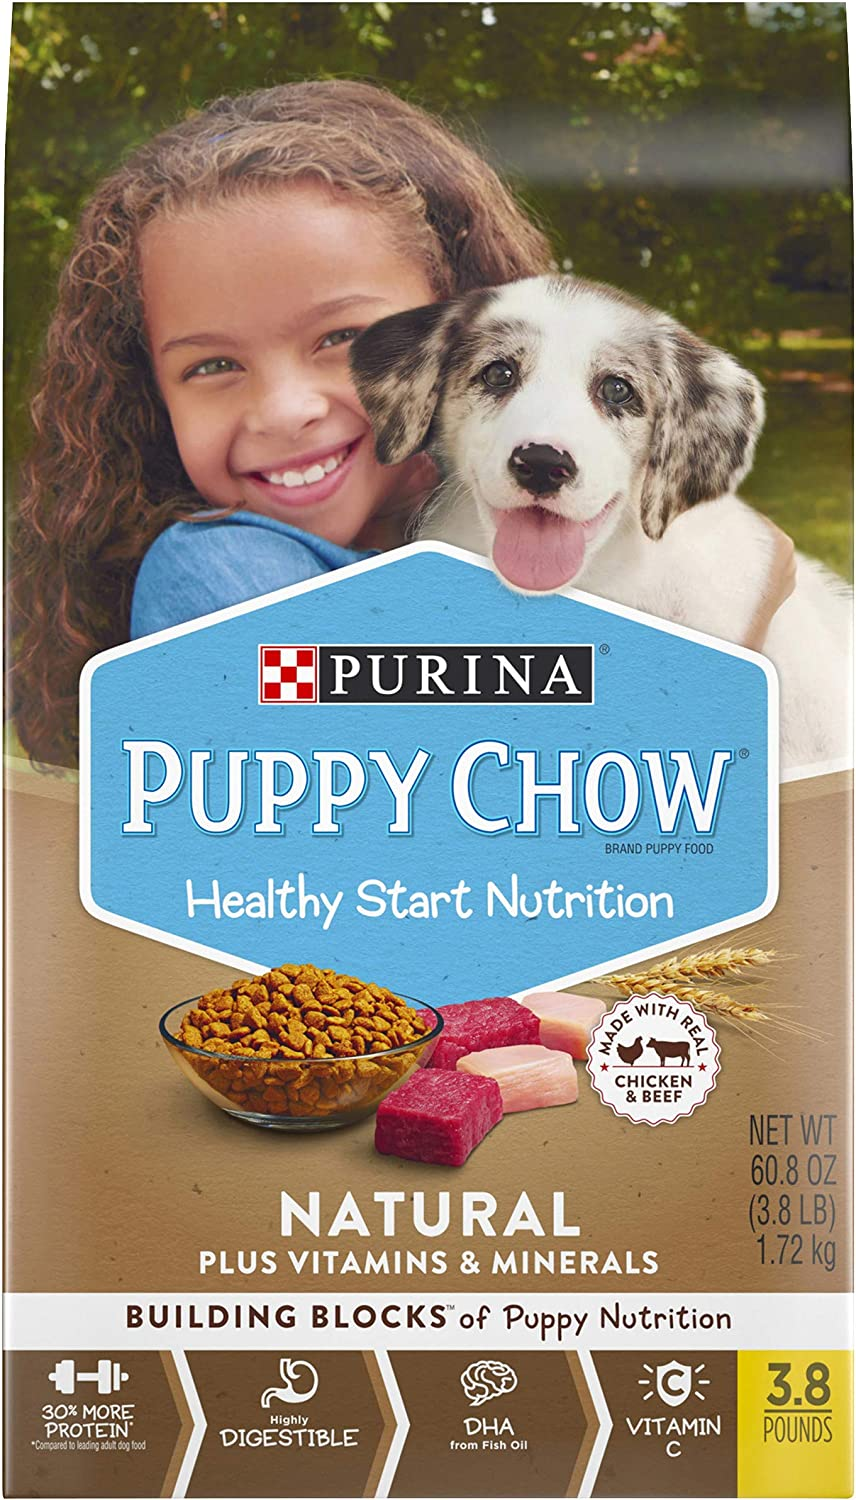 Purina Puppy Chow Natural High Protein Dry Puppy Food, With Real Chicken & Beef - 3.8 lb. Bag